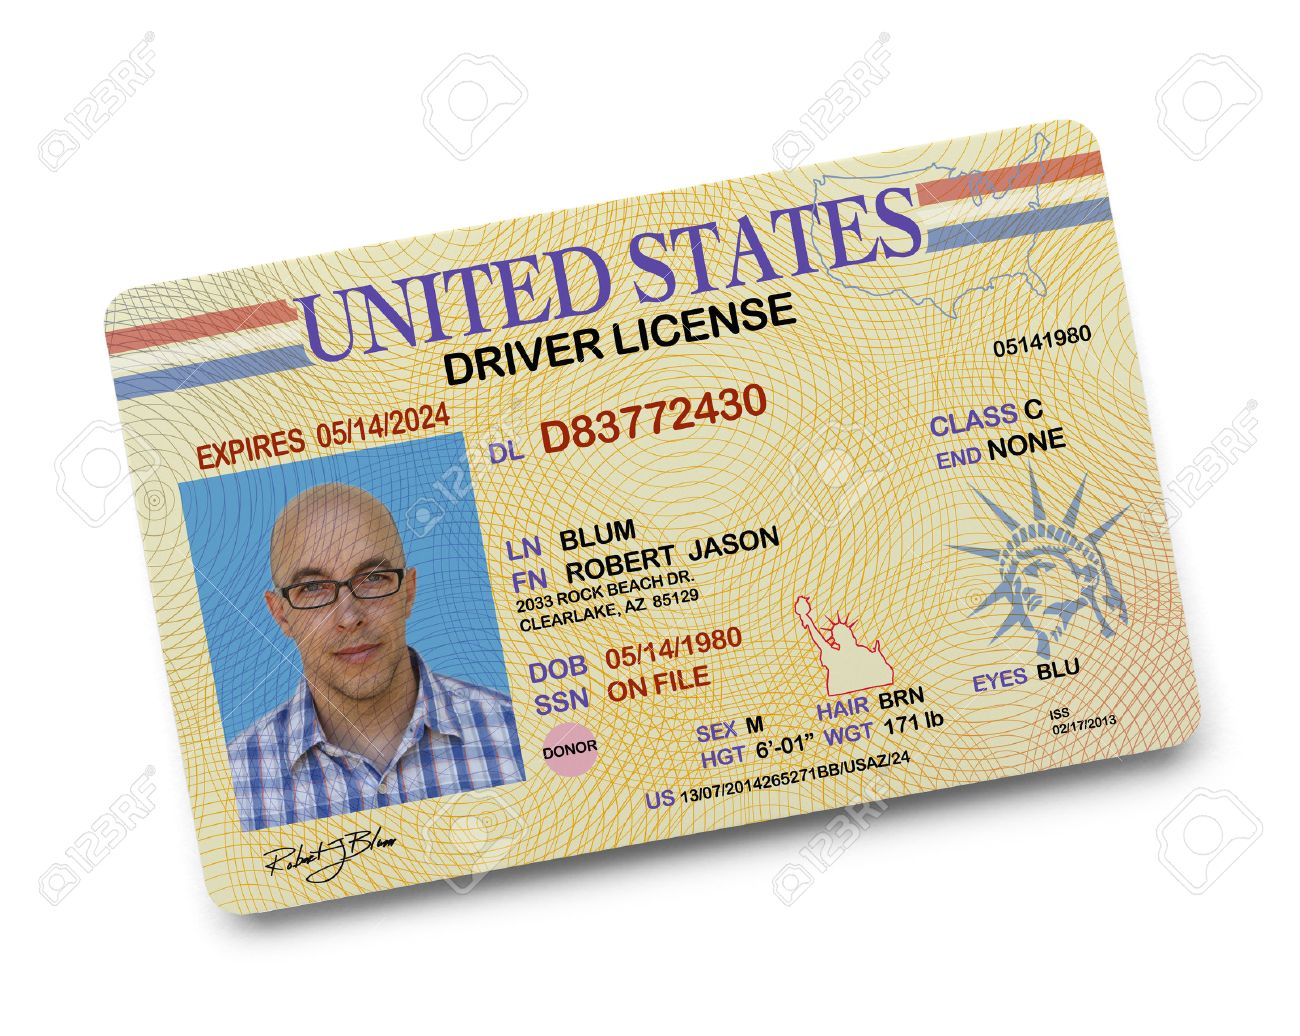 License Free 38258487 Isolated Background Driver On And Stock Image White Picture Us Photo Image Royalty